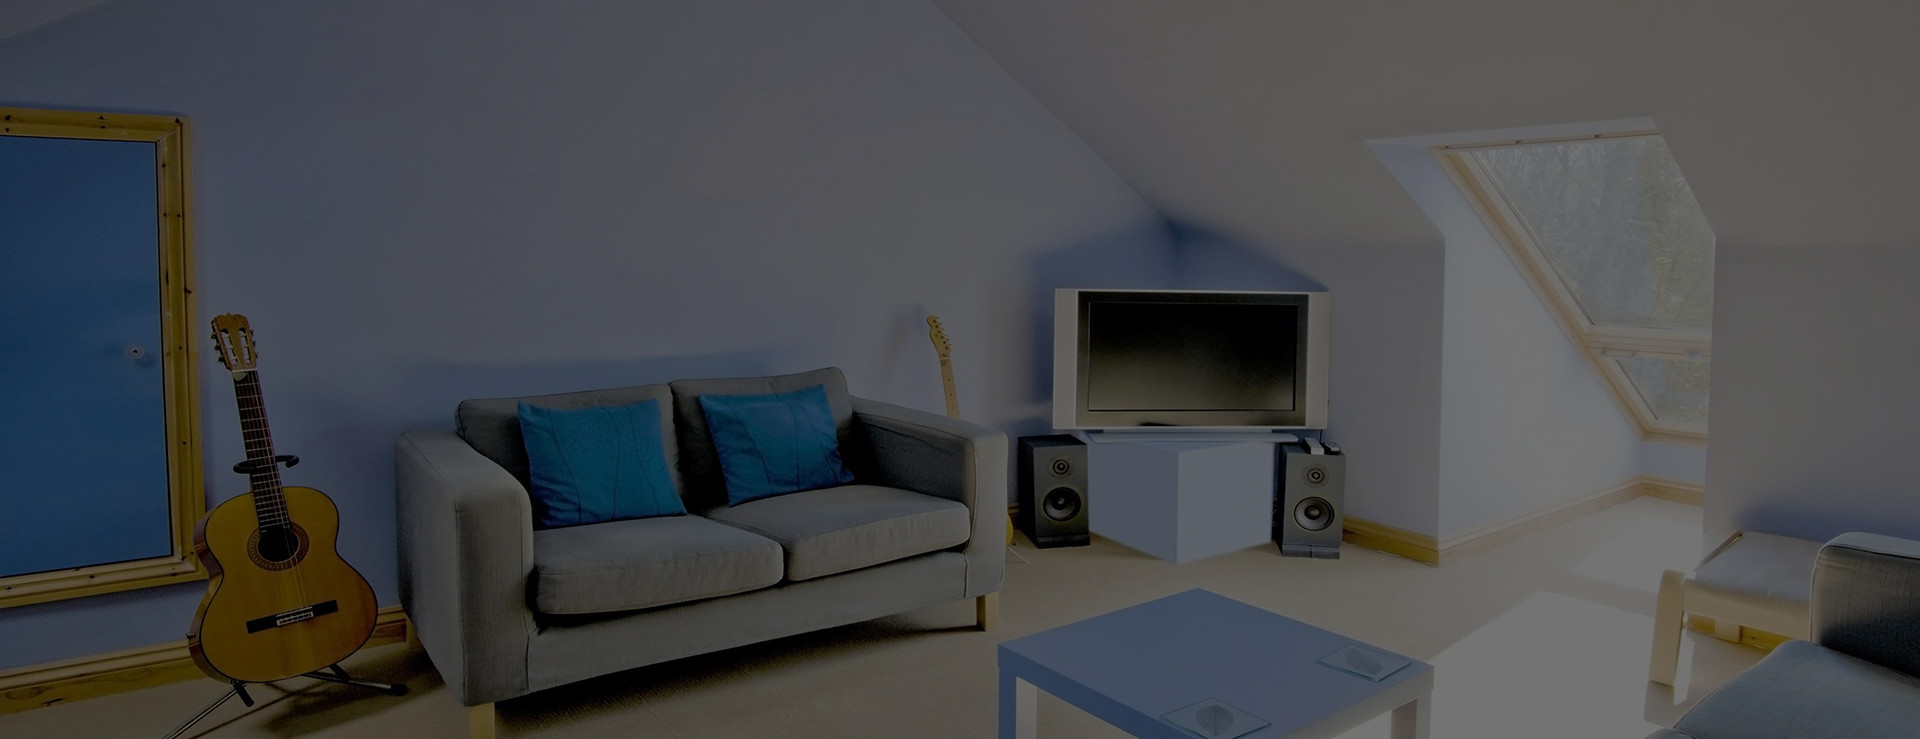 Home Renovation in Essex